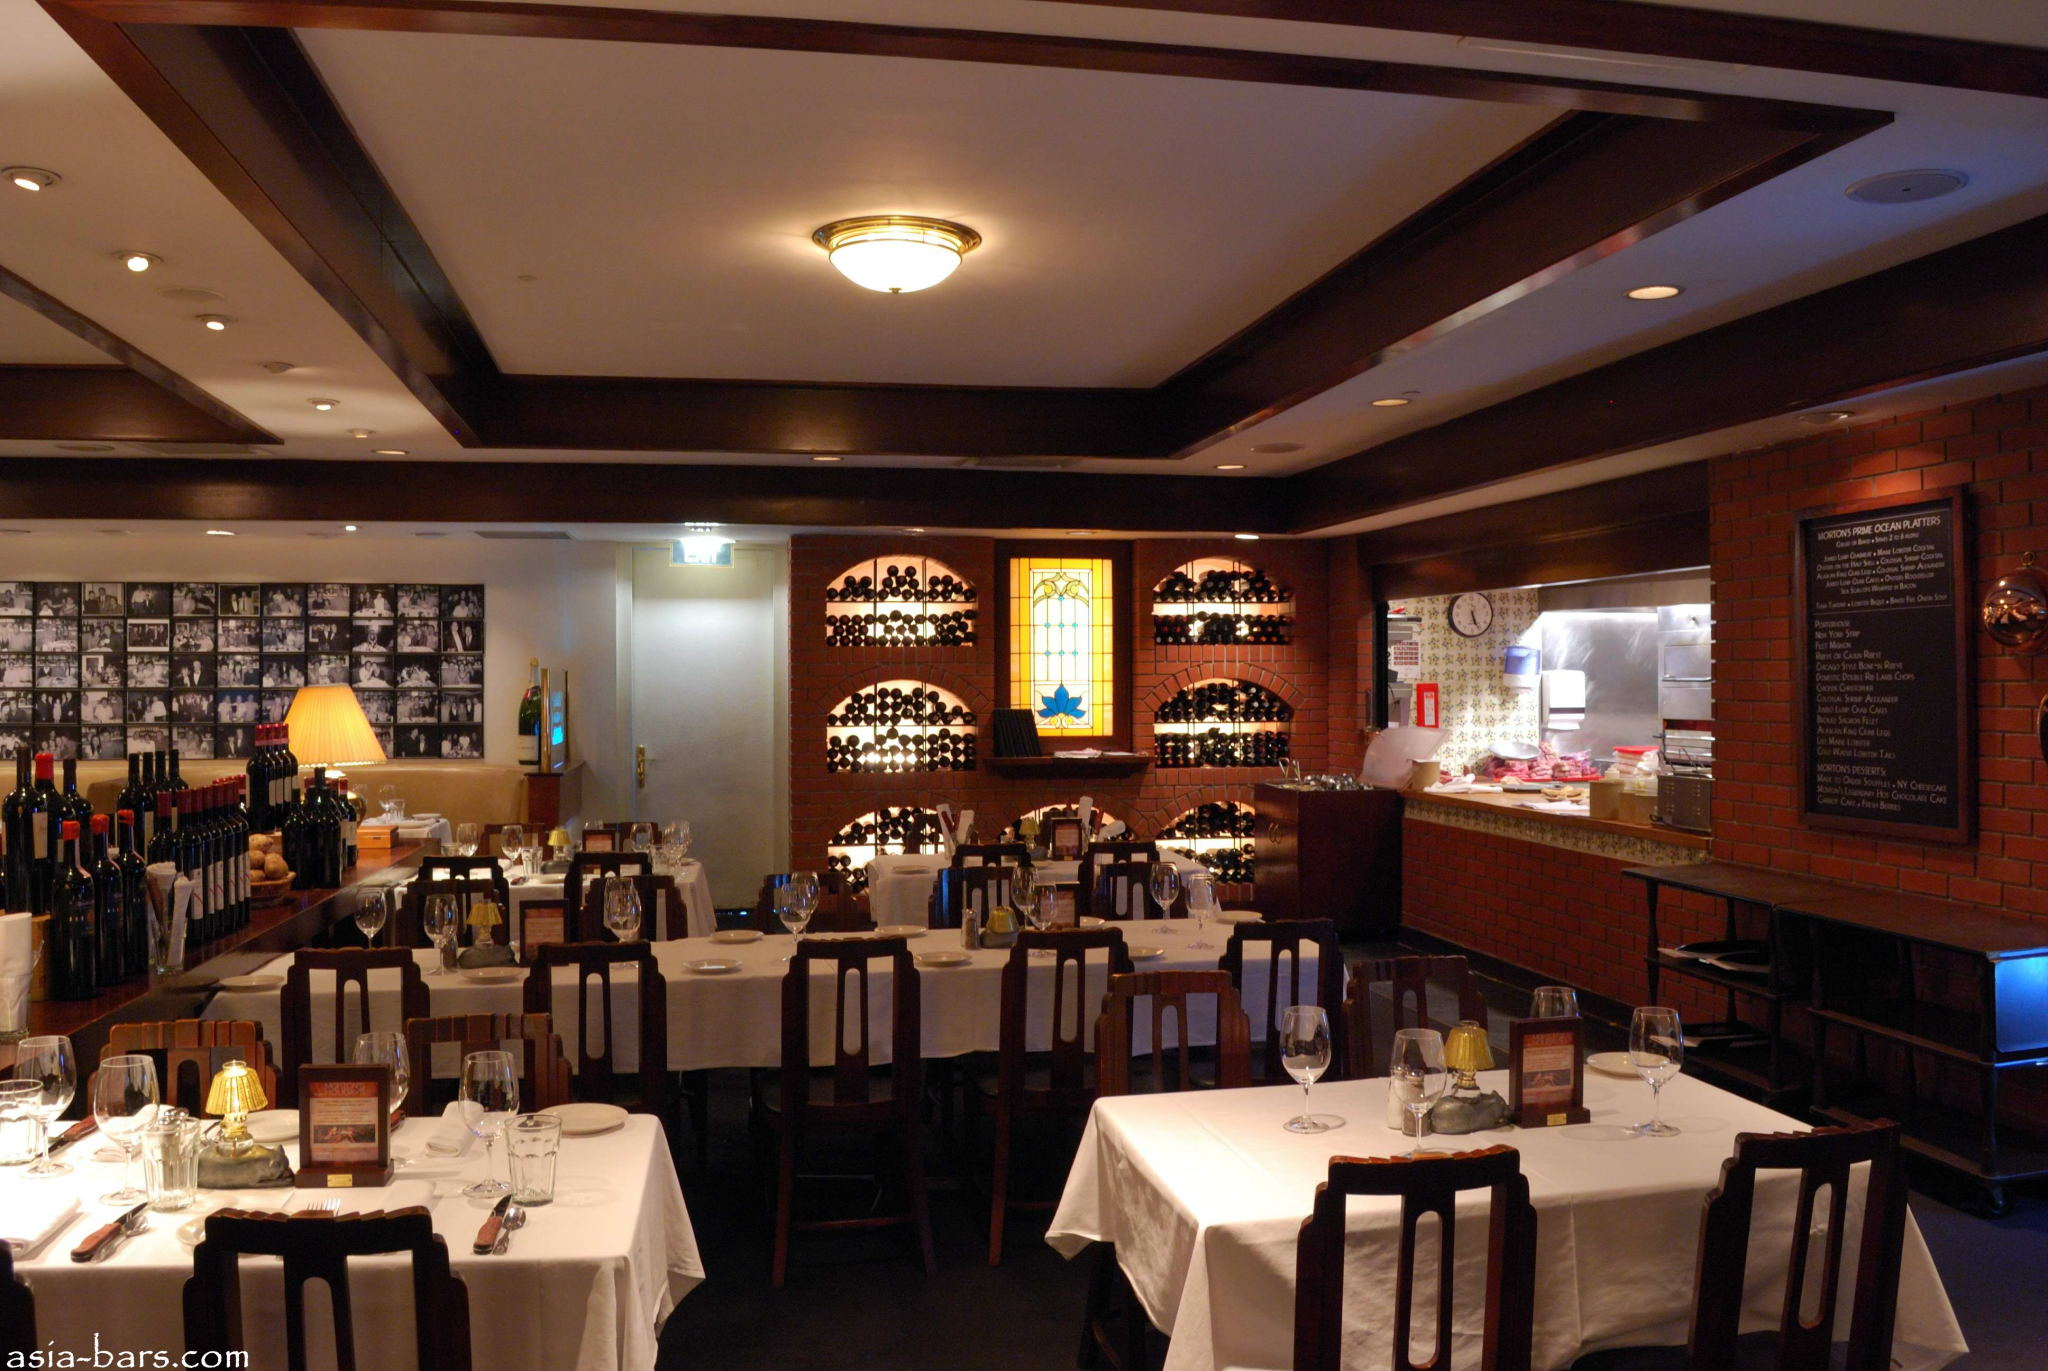 steak house Sullivan's steakhouse blends amazing food with live music to create an unmatched fine dining experience make a reservation today.